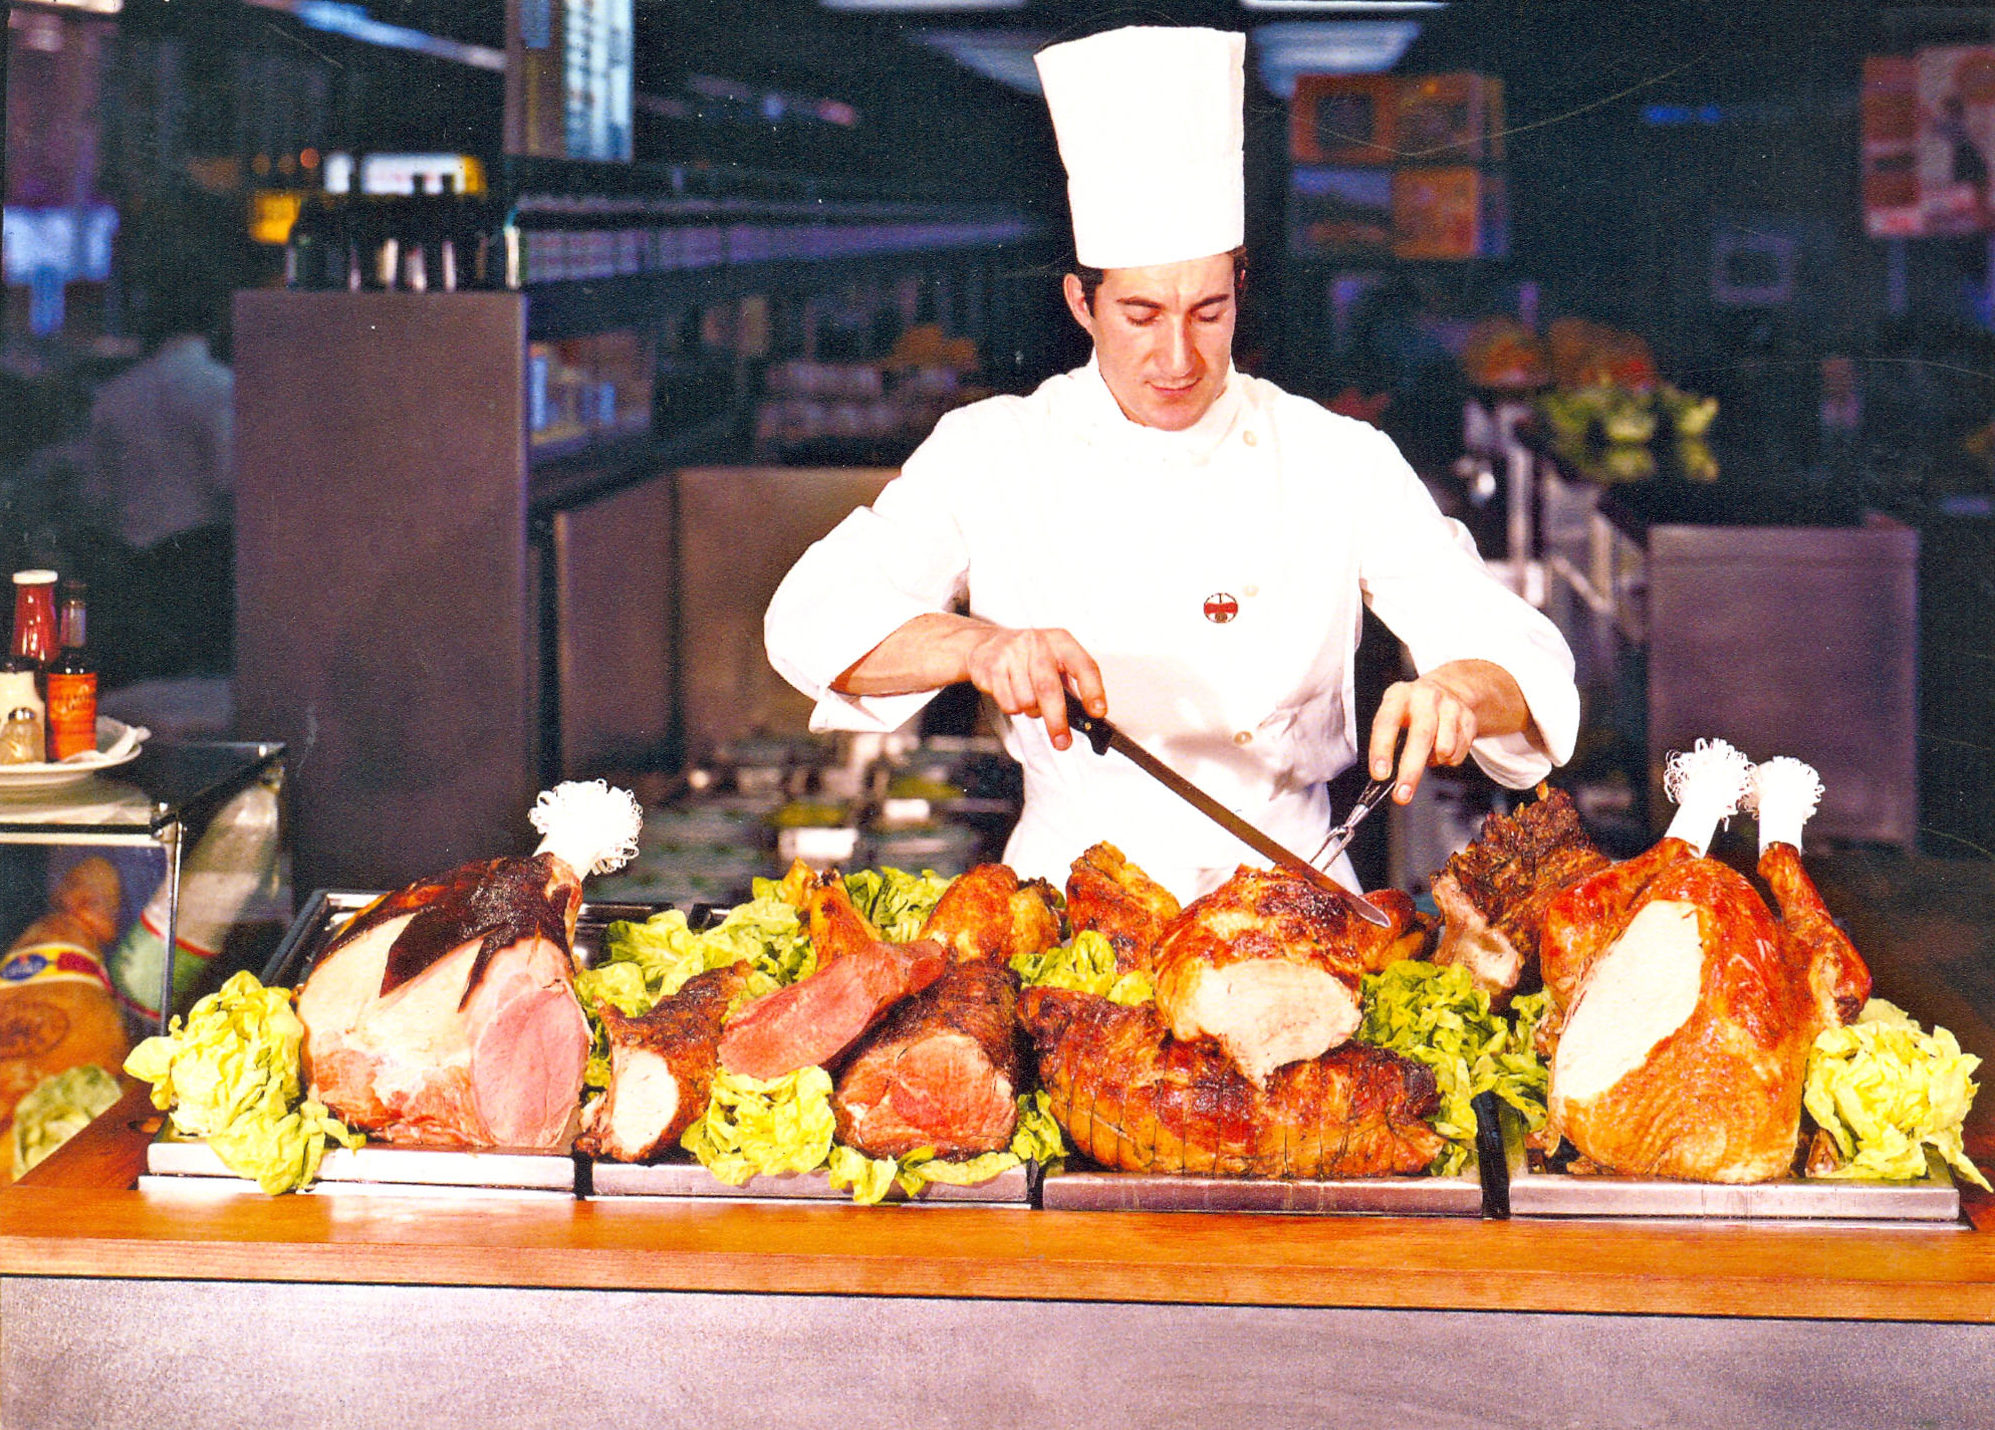 Cook of a Service Station in front of the cart for roasts